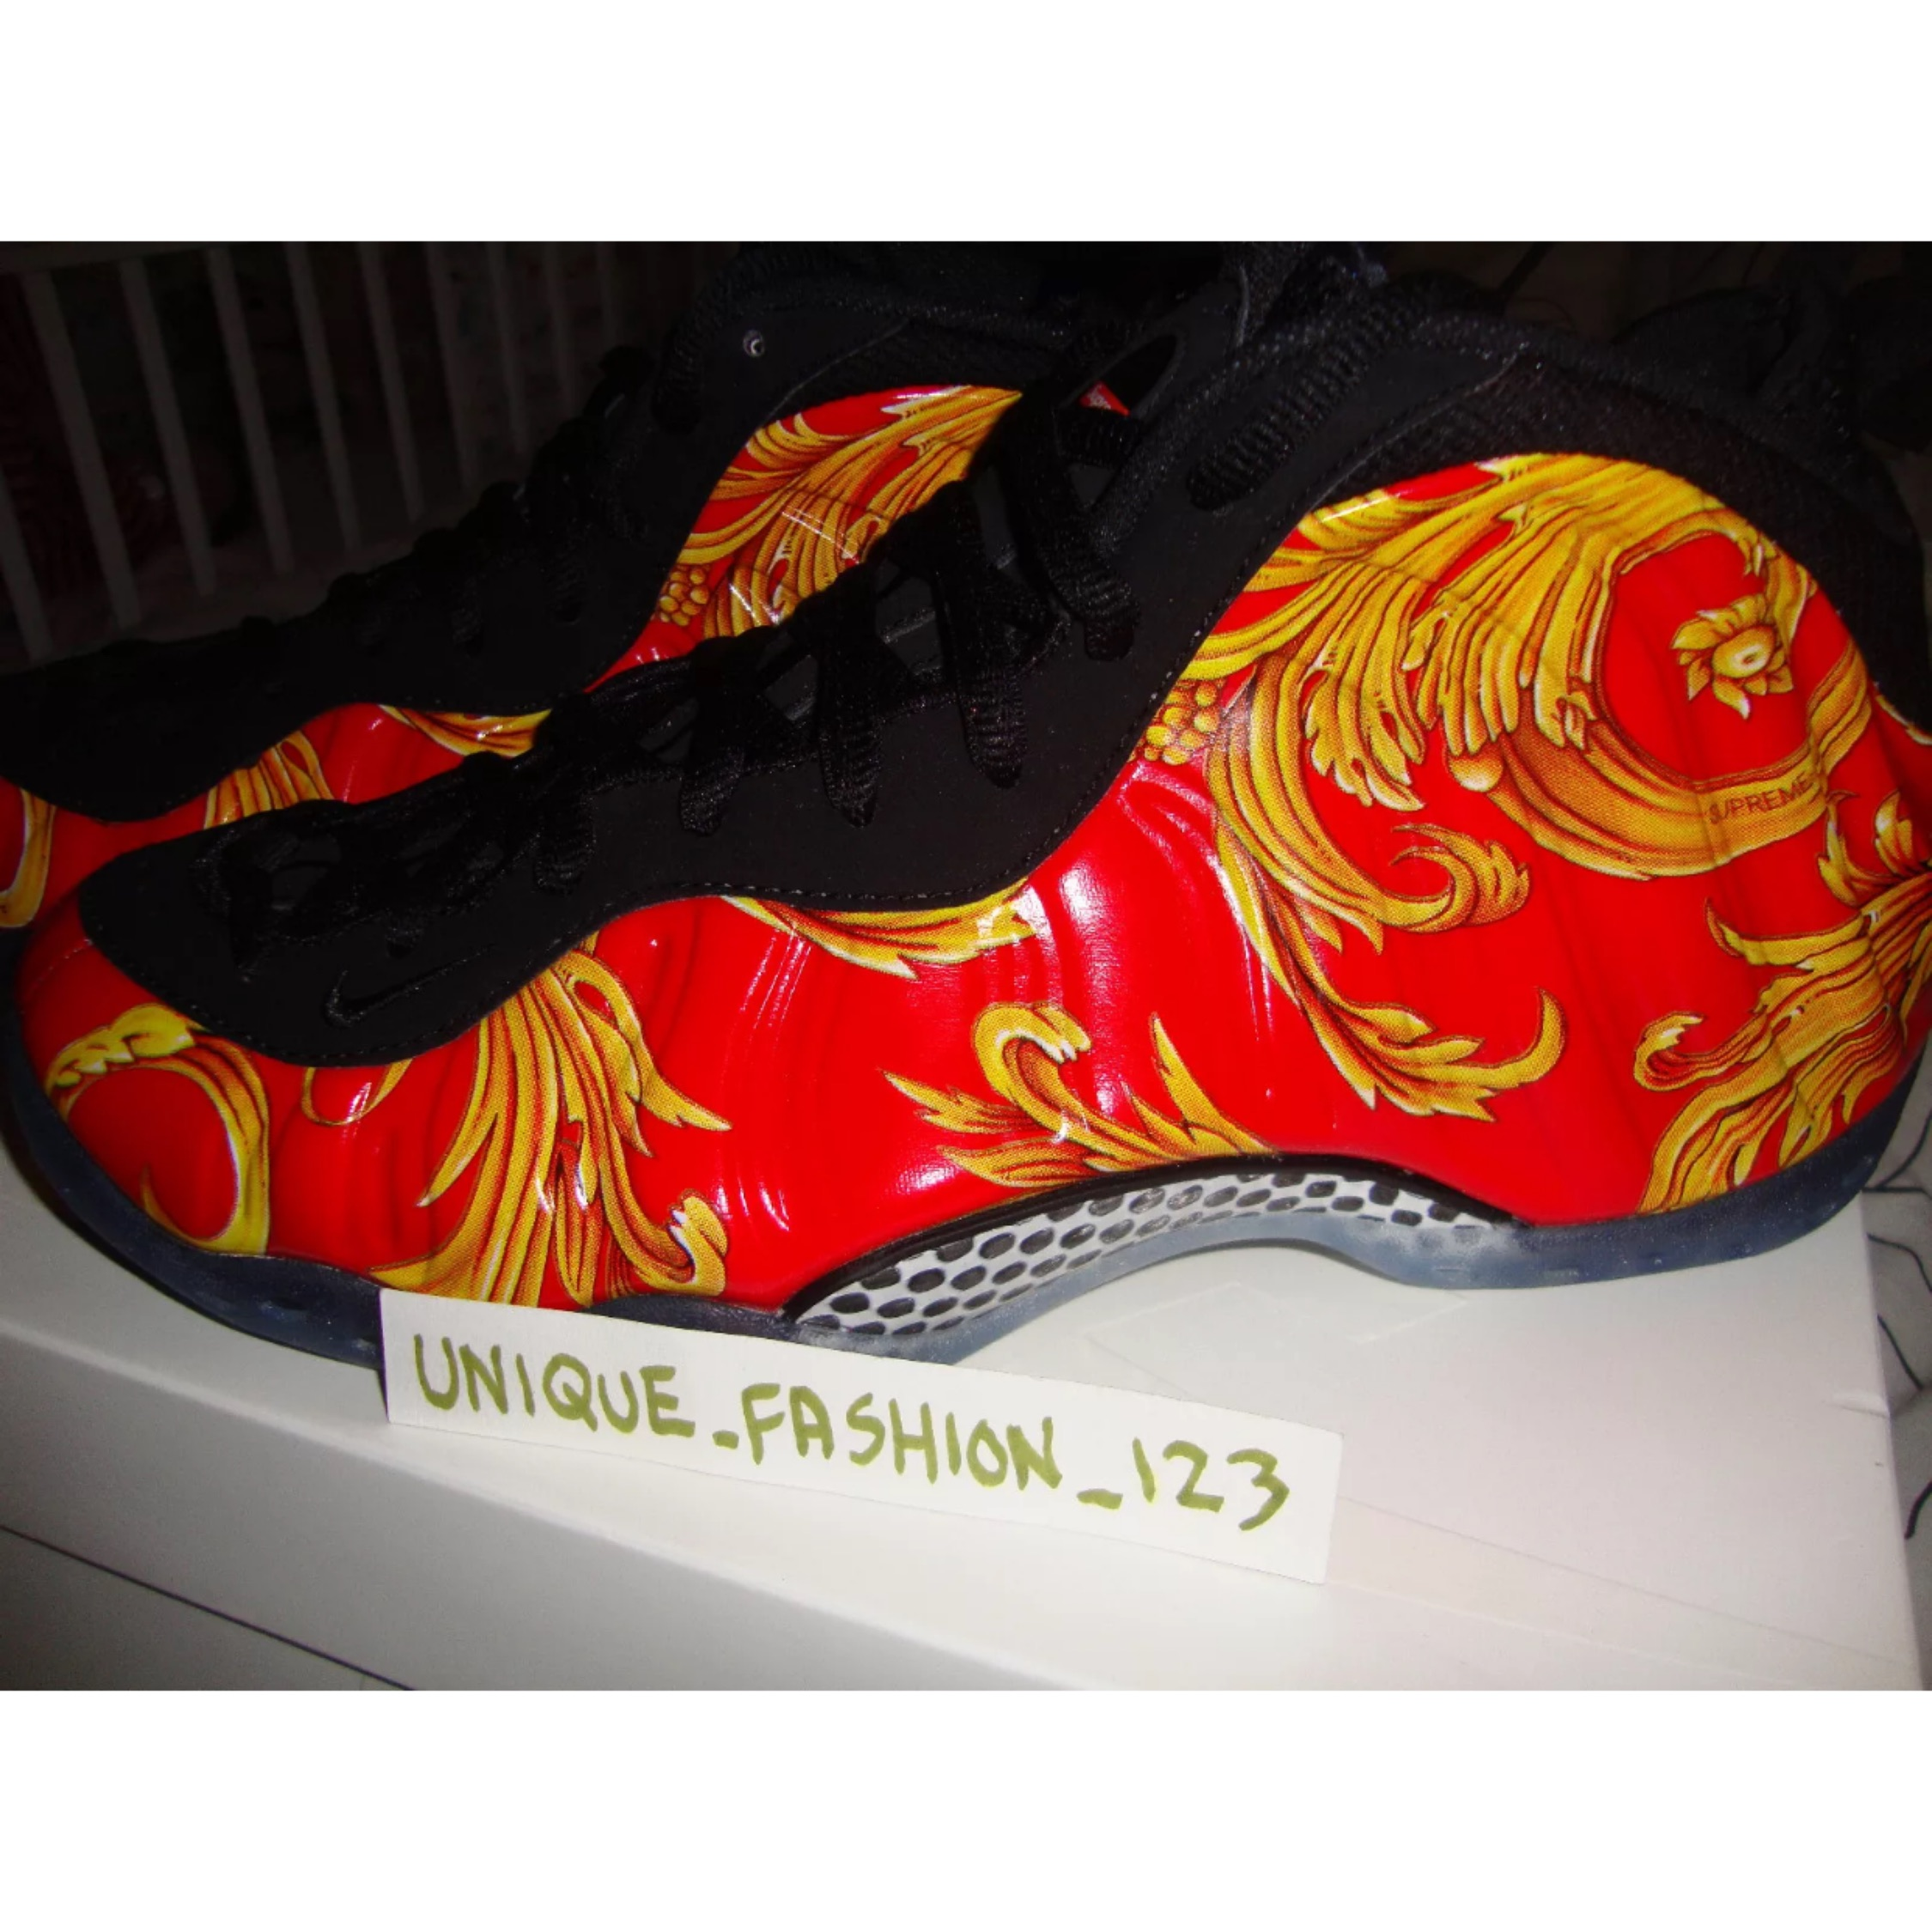 7e678f2712b Nike Air Foamposite Supreme Galaxy